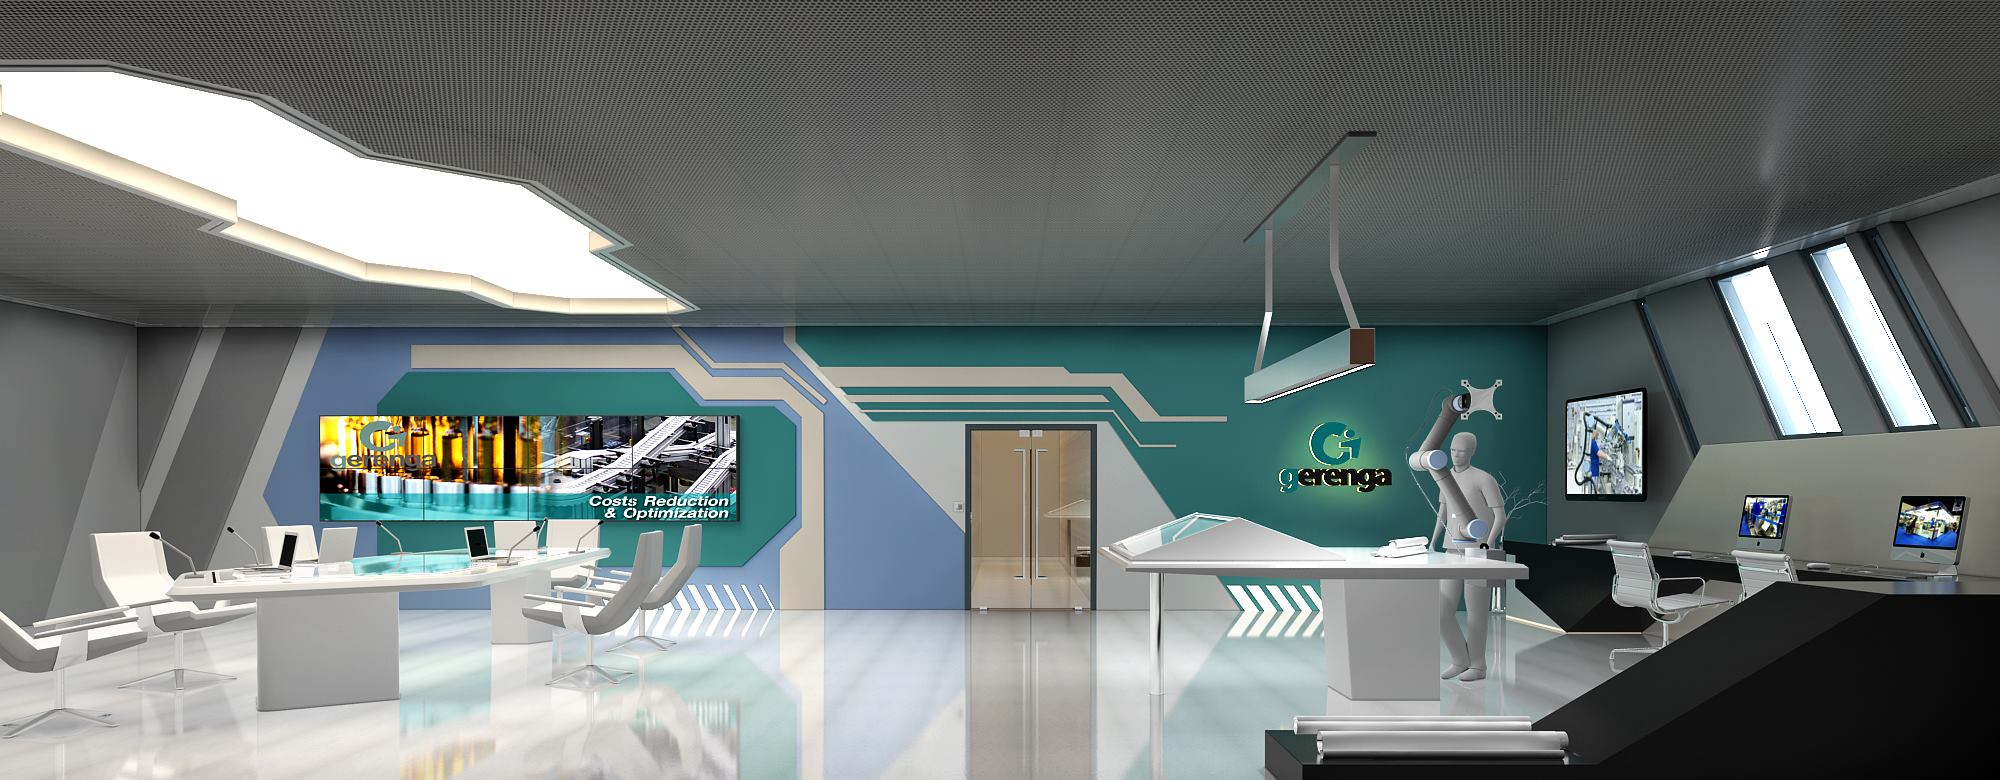 Futuristic Set Design for a Robotics Company,Gerenga from Germany 3D model - Floor 2,Brainstorming area